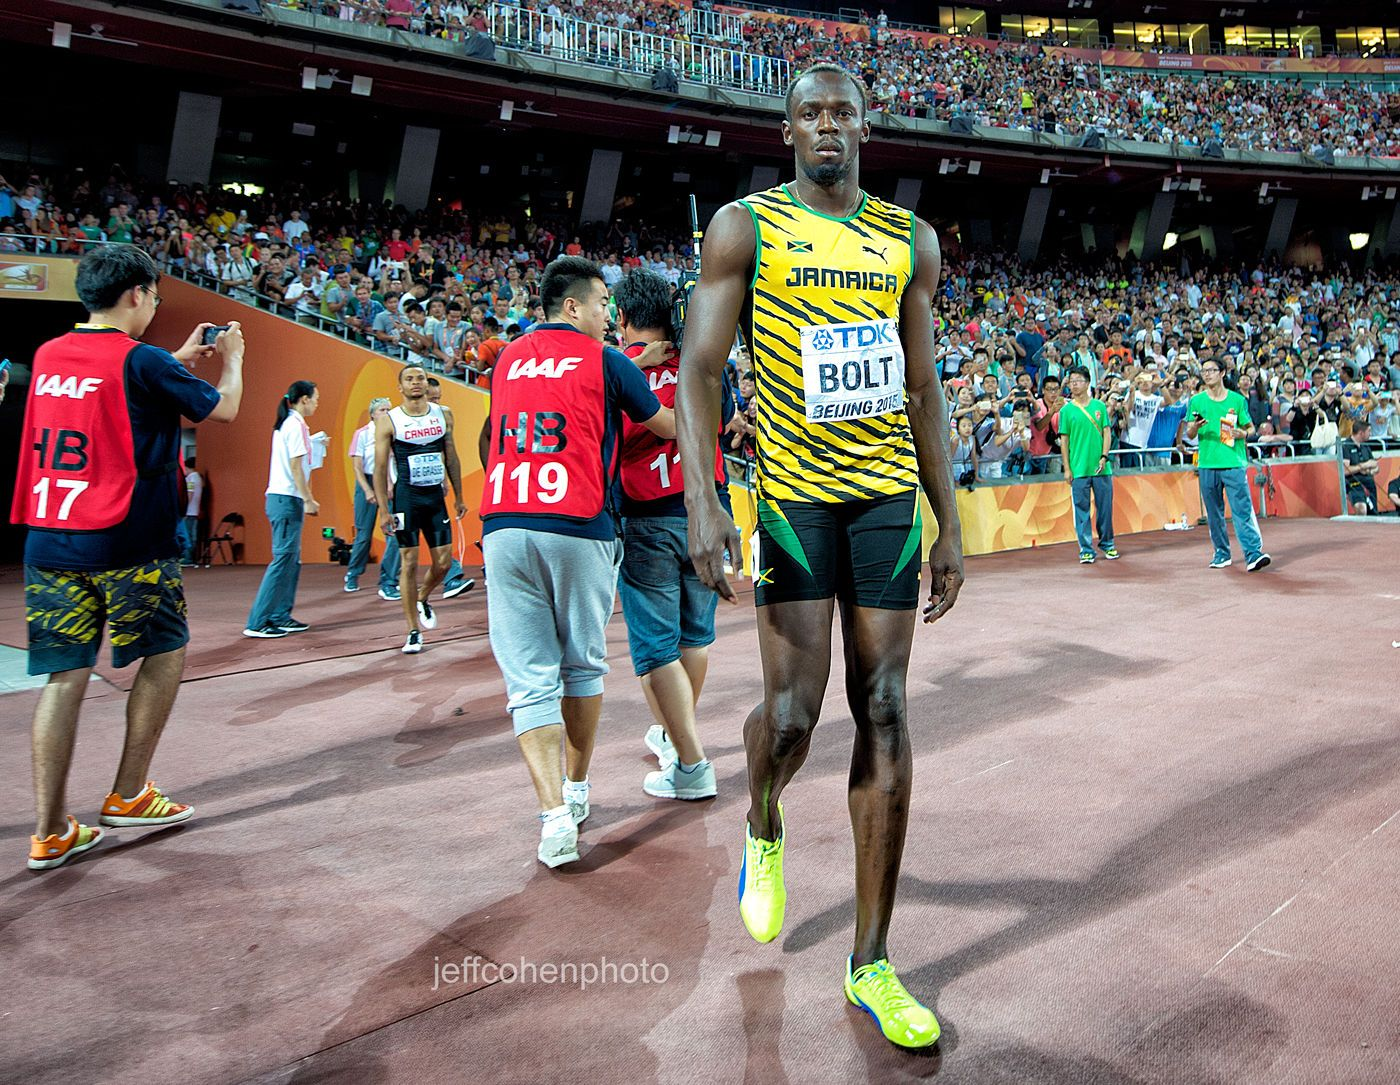 1beijing2015_day2_bolt_100m_final_walk_jeff_cohen_photo_7165_web.jpg